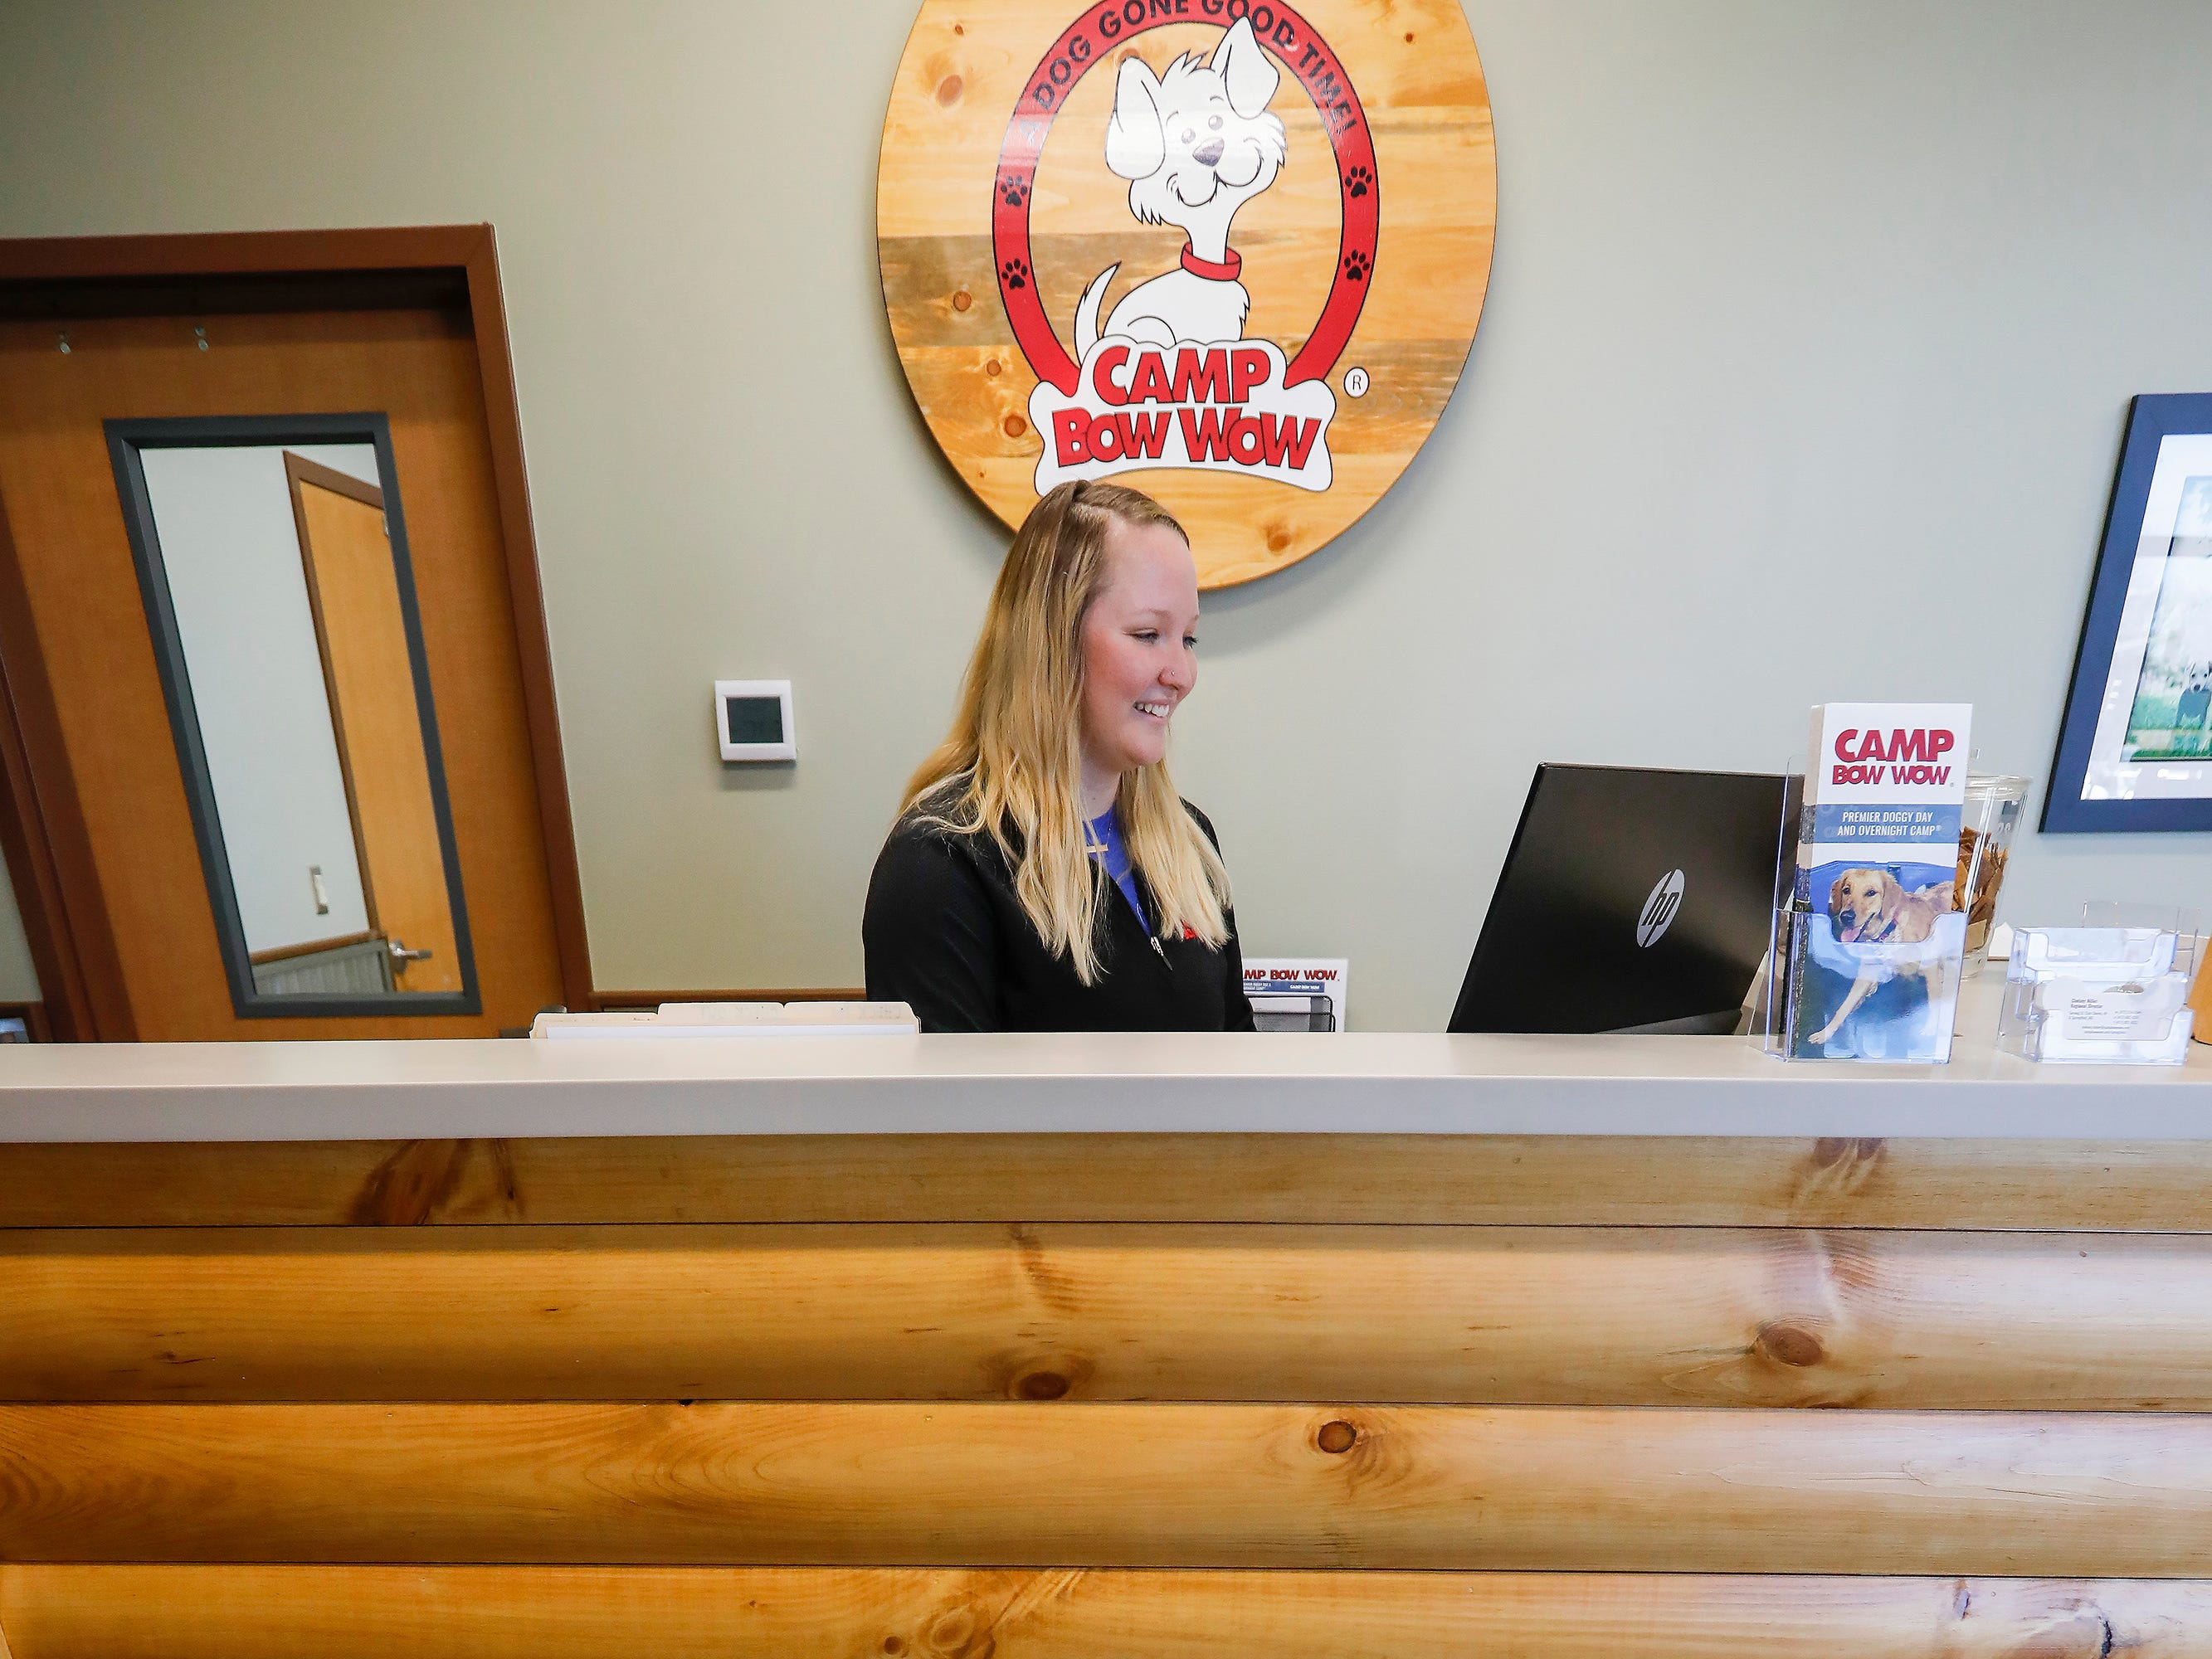 Carson Baron is the manager at the new Camp Bow Wow located at 2814 S. Fremont Ave., Suite 104.